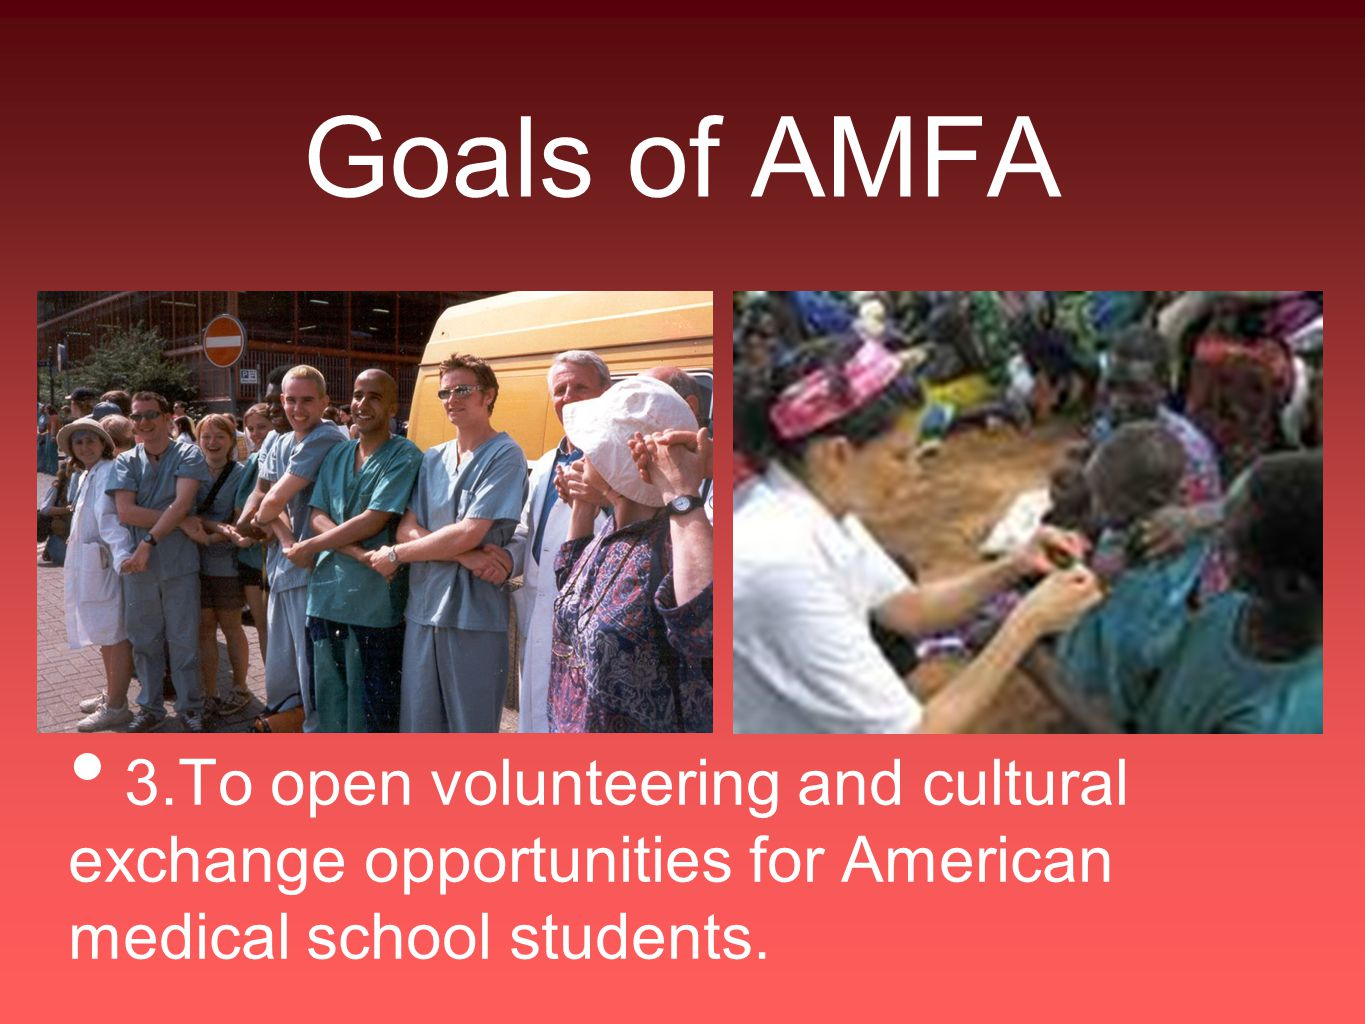 Goals of AMFA 3.To open volunteering and cultural exchange opportunities for American medical school students.